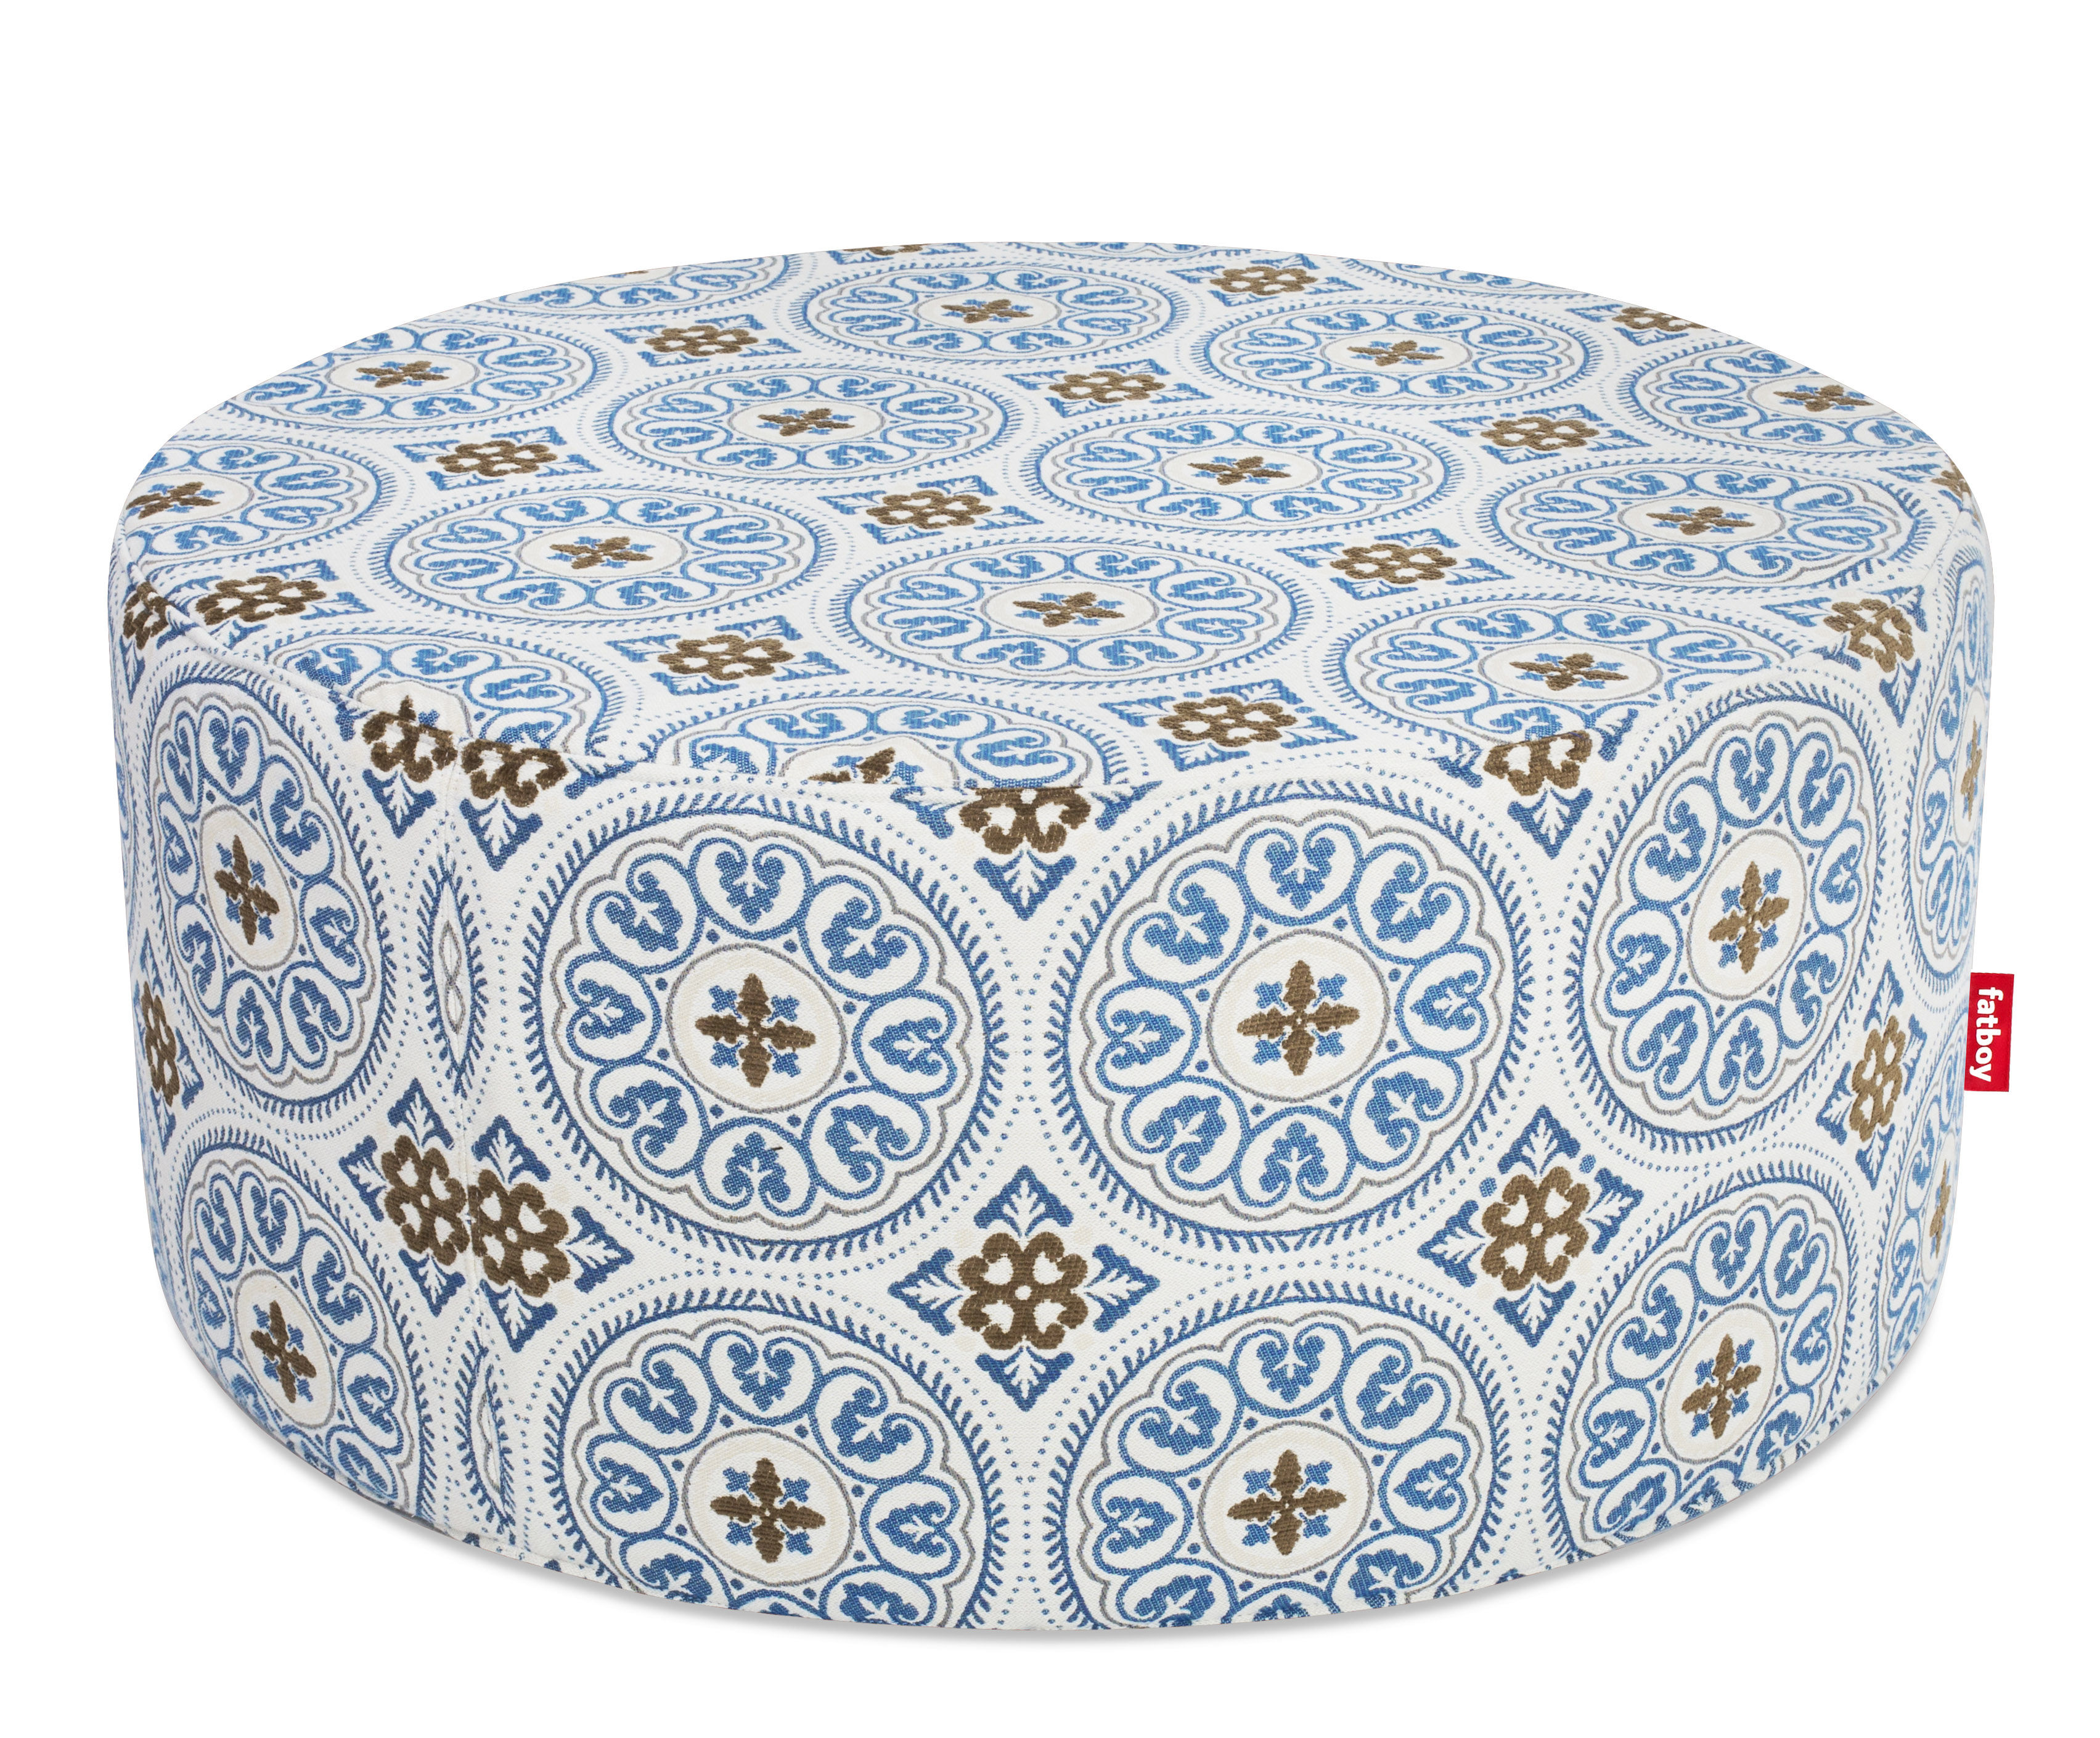 pouf pfffh pour l 39 ext rieur 90 cm bleu fatboy. Black Bedroom Furniture Sets. Home Design Ideas